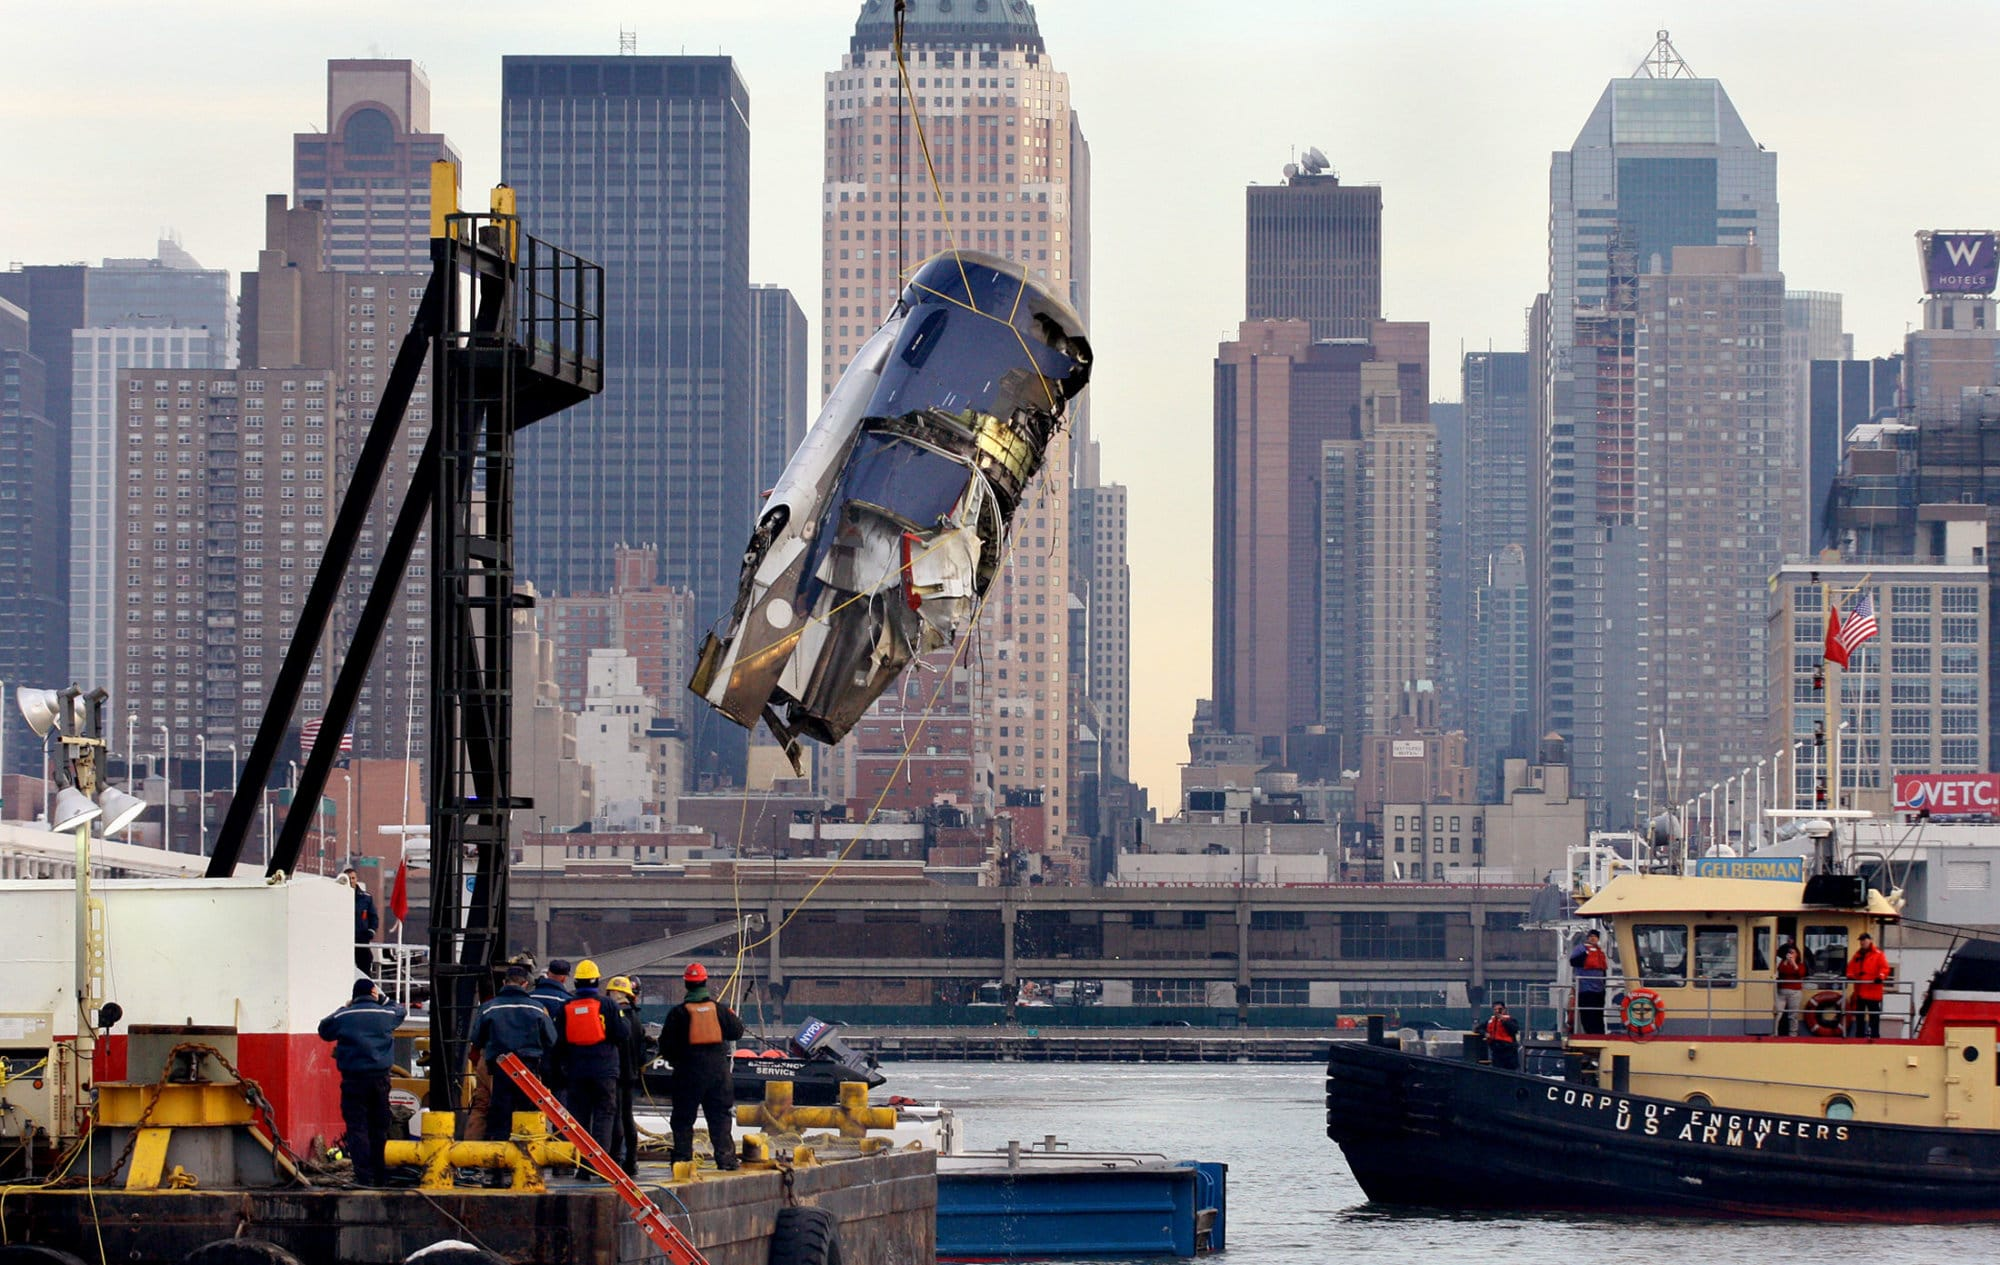 From the deck of the U.S. Army Corps of Engineers Hayward, the engine of US Airlines Flight 1549 that crash landed into the water on Jan. 15 can be seen as it is retrieved from the icy Hudson River in New York Friday, Jan. 23, 2009. (AP Photo/Craig Ruttle)